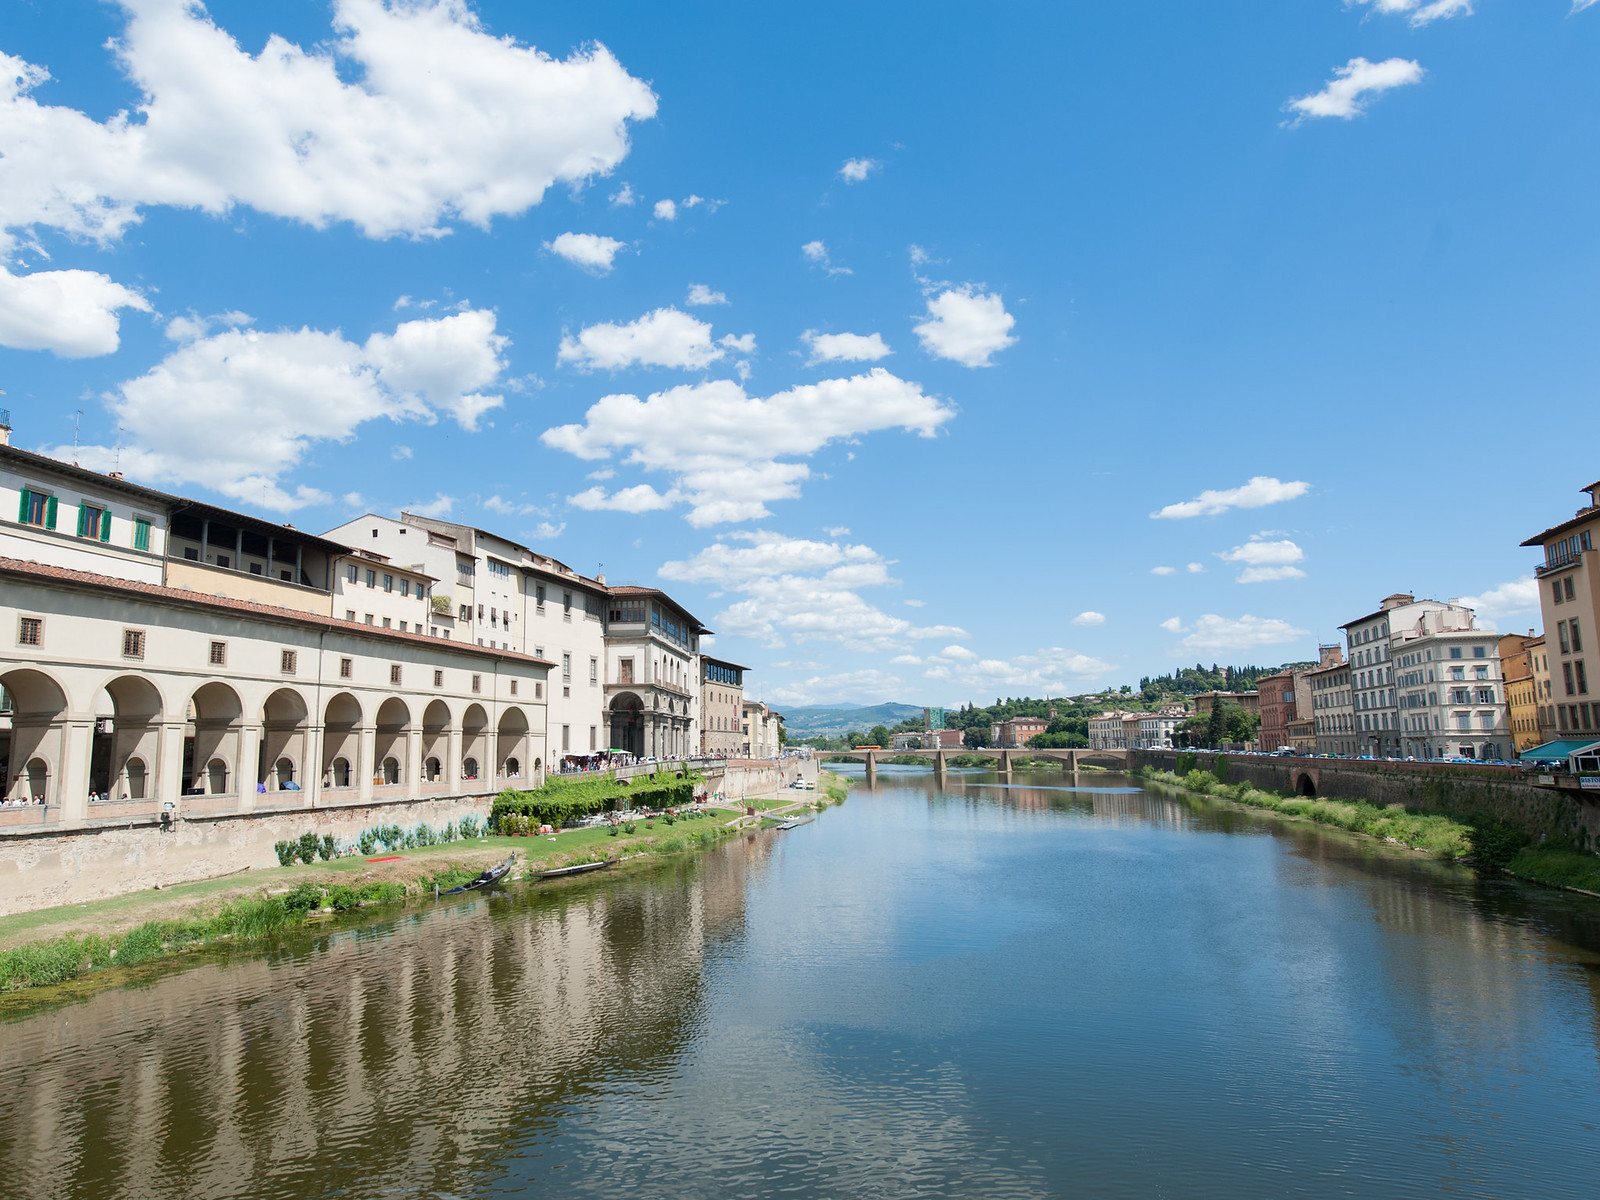 View of the river from Ponte Vecchio, Florence Italy